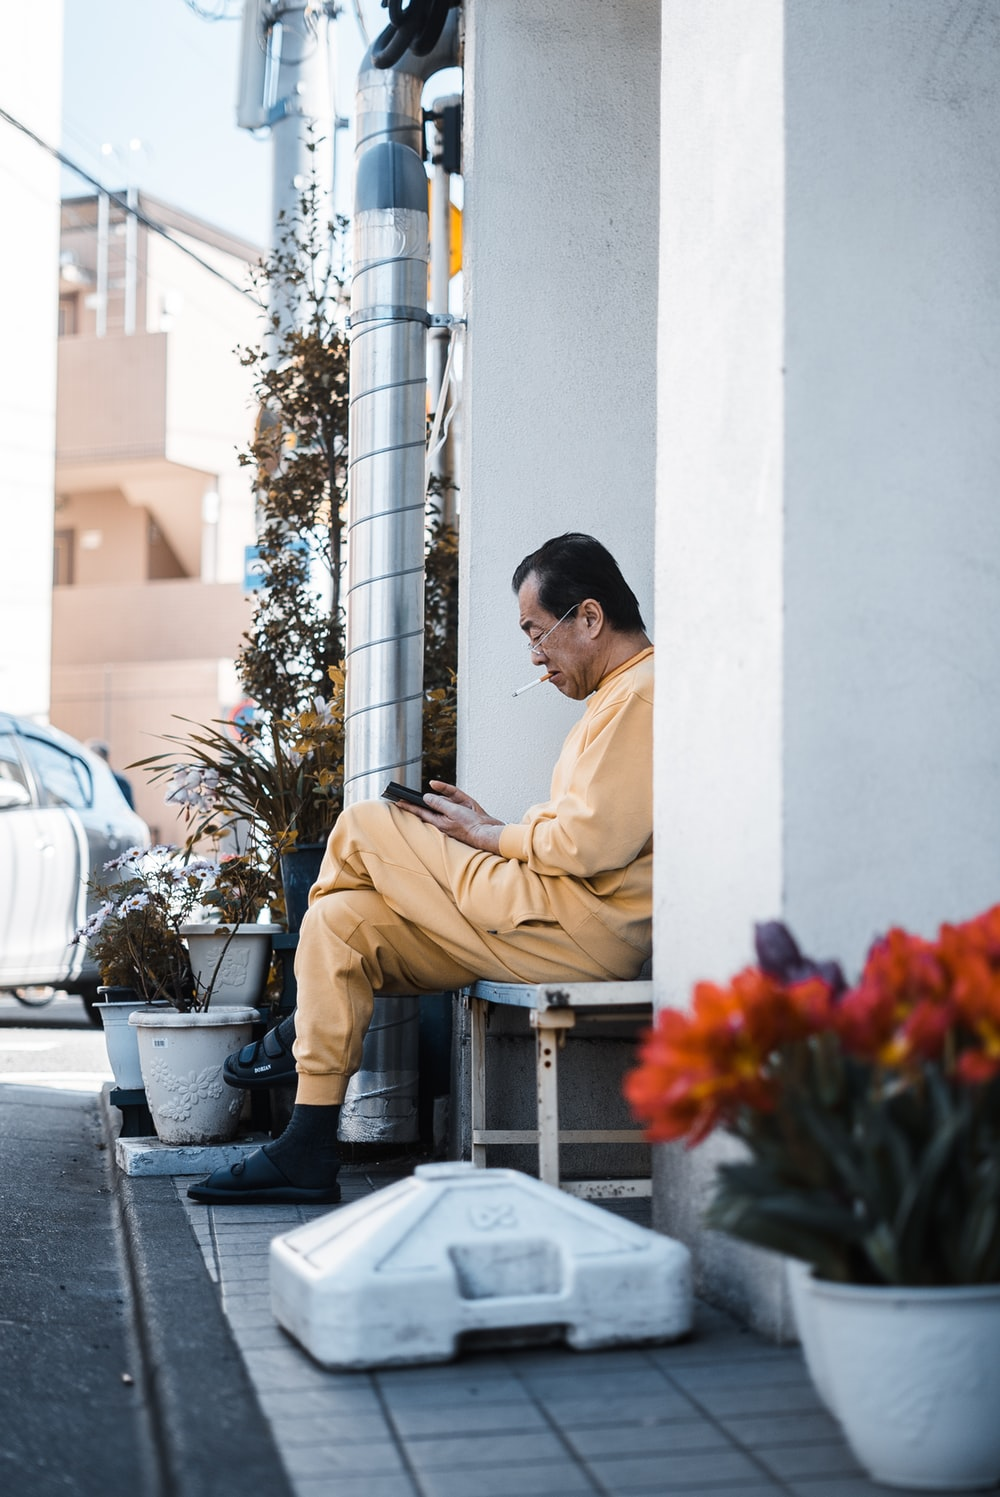 seated man in a yellow jumpsuit